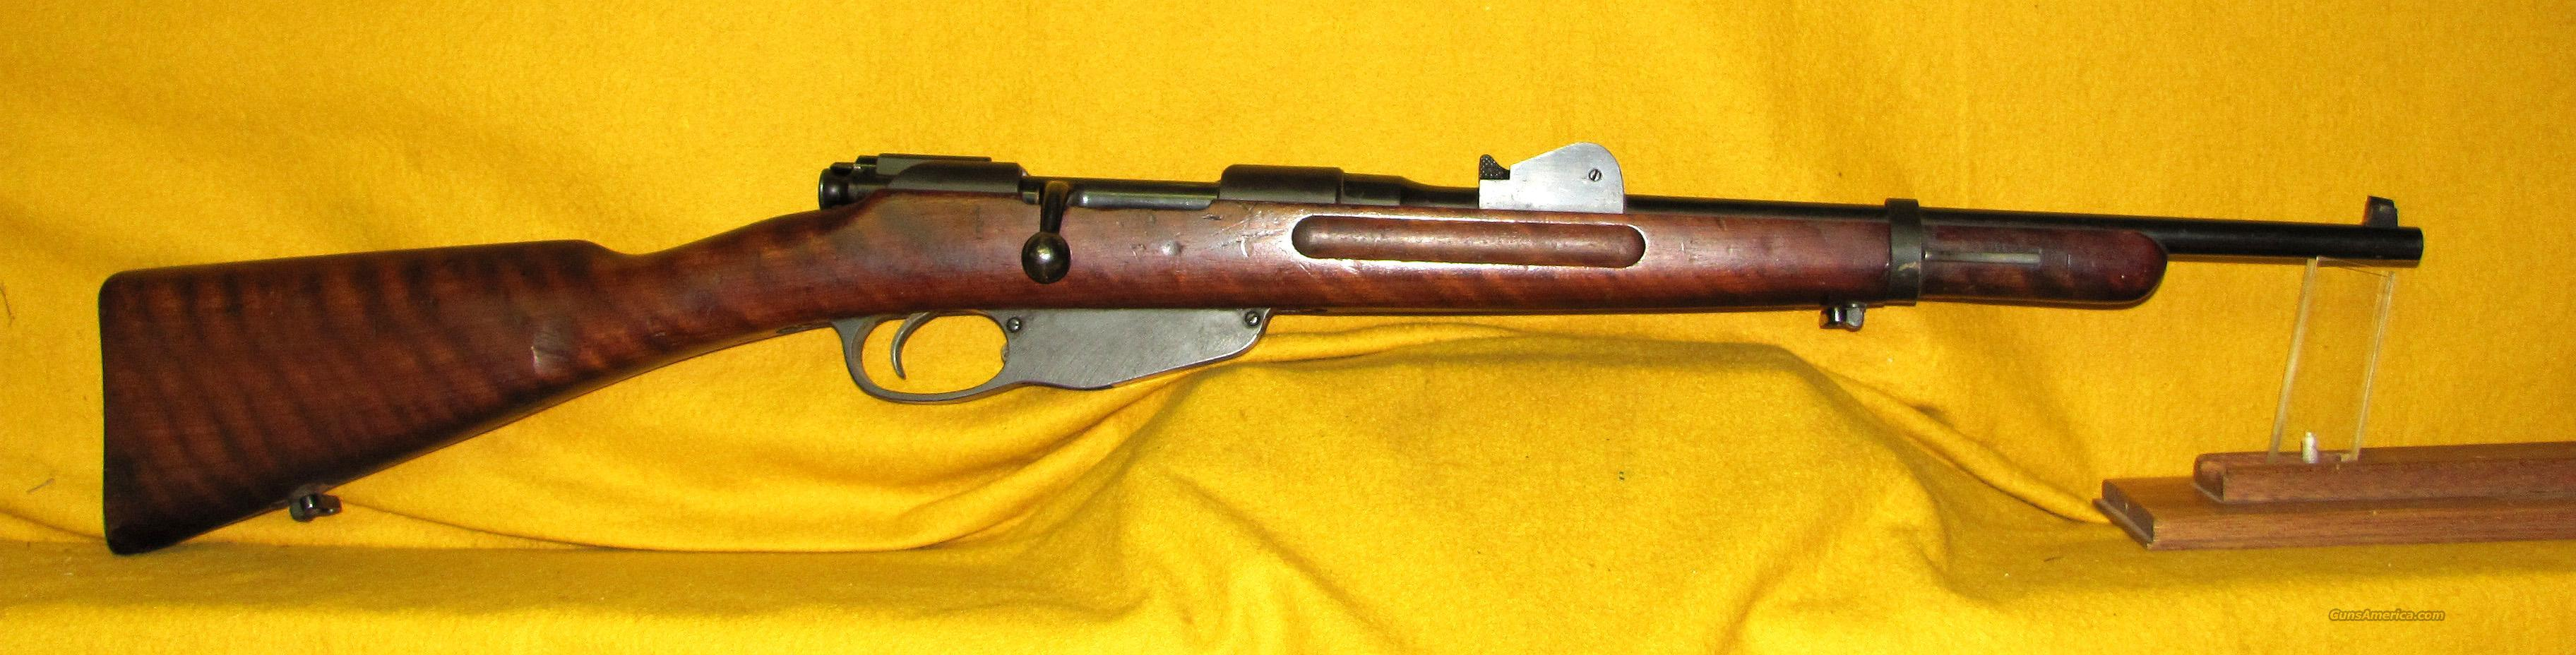 DUTCH HEMBRUG CARBINE 1906  Guns > Rifles > Military Misc. Rifles Non-US > Other